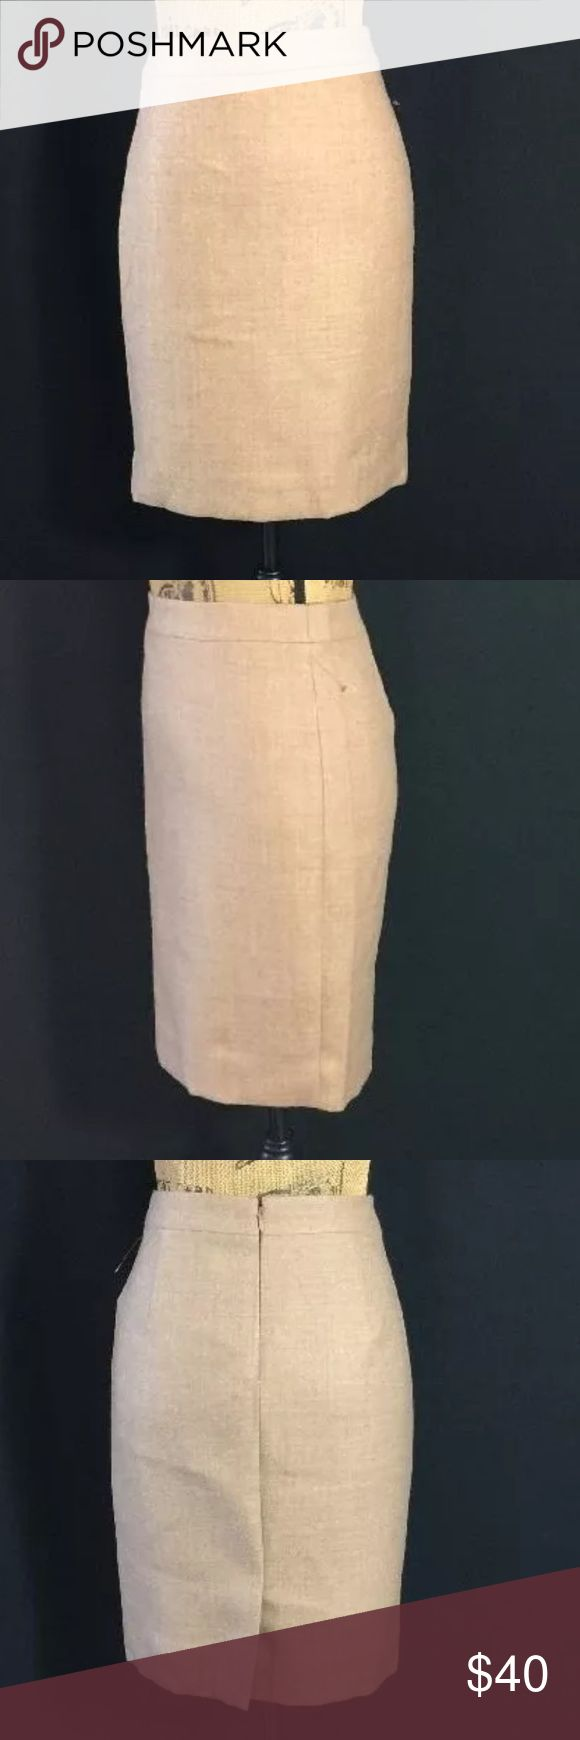 J.Crew No. 2 Pencil Skirt Camel Brown Wool Work 4P Like new J.Crew No. 2 pencils skirt size 4 Petite. A camel/brown color. 100% soft Wool. Lined. J. Crew Skirts Pencil